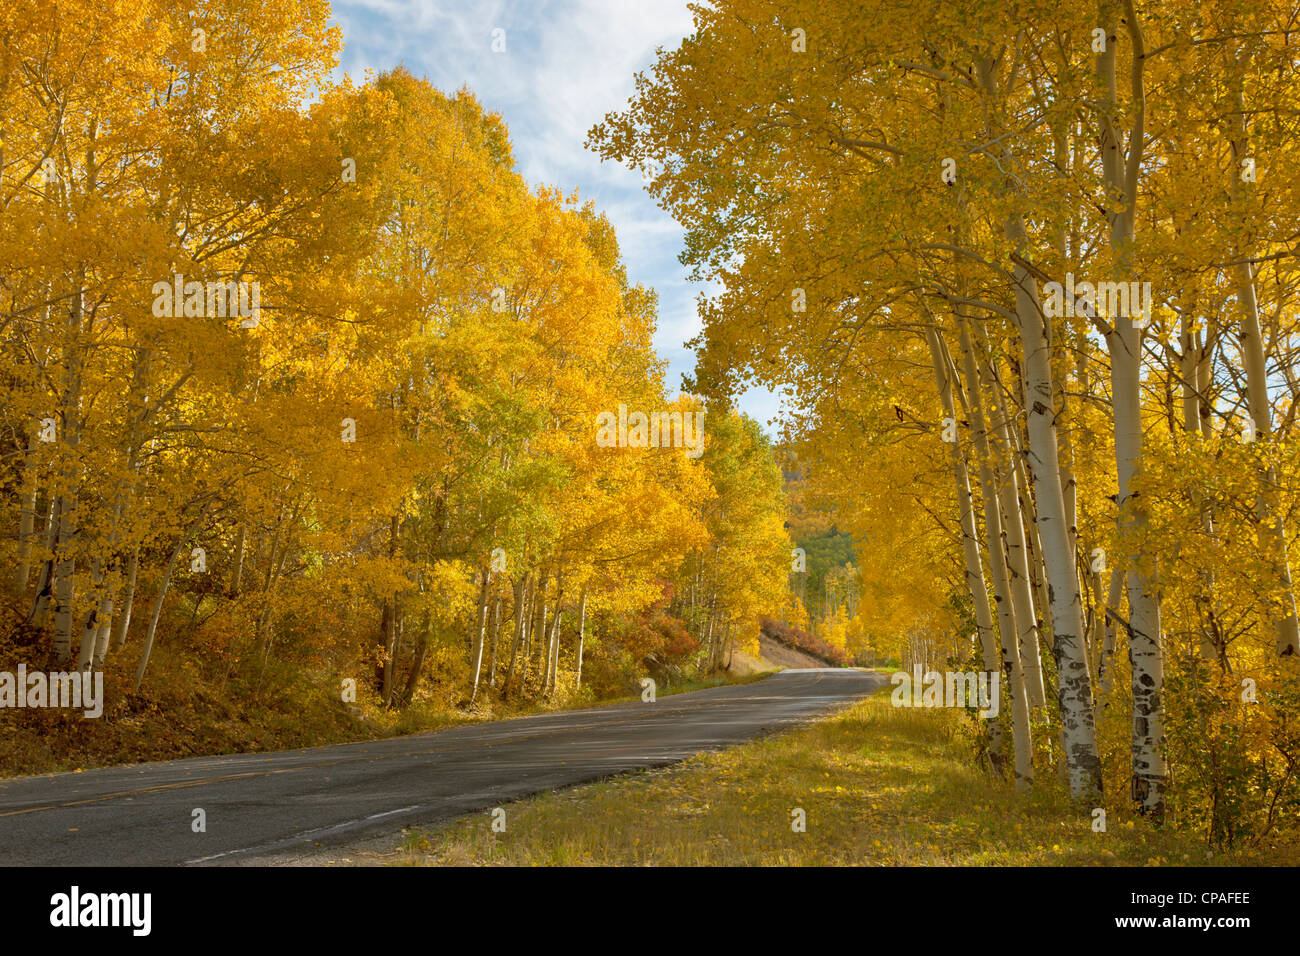 USA, Colorado, Black Canyon of the Gunnison National Park. Colorado Highway 92, winds through groves of fall-colored - Stock Image